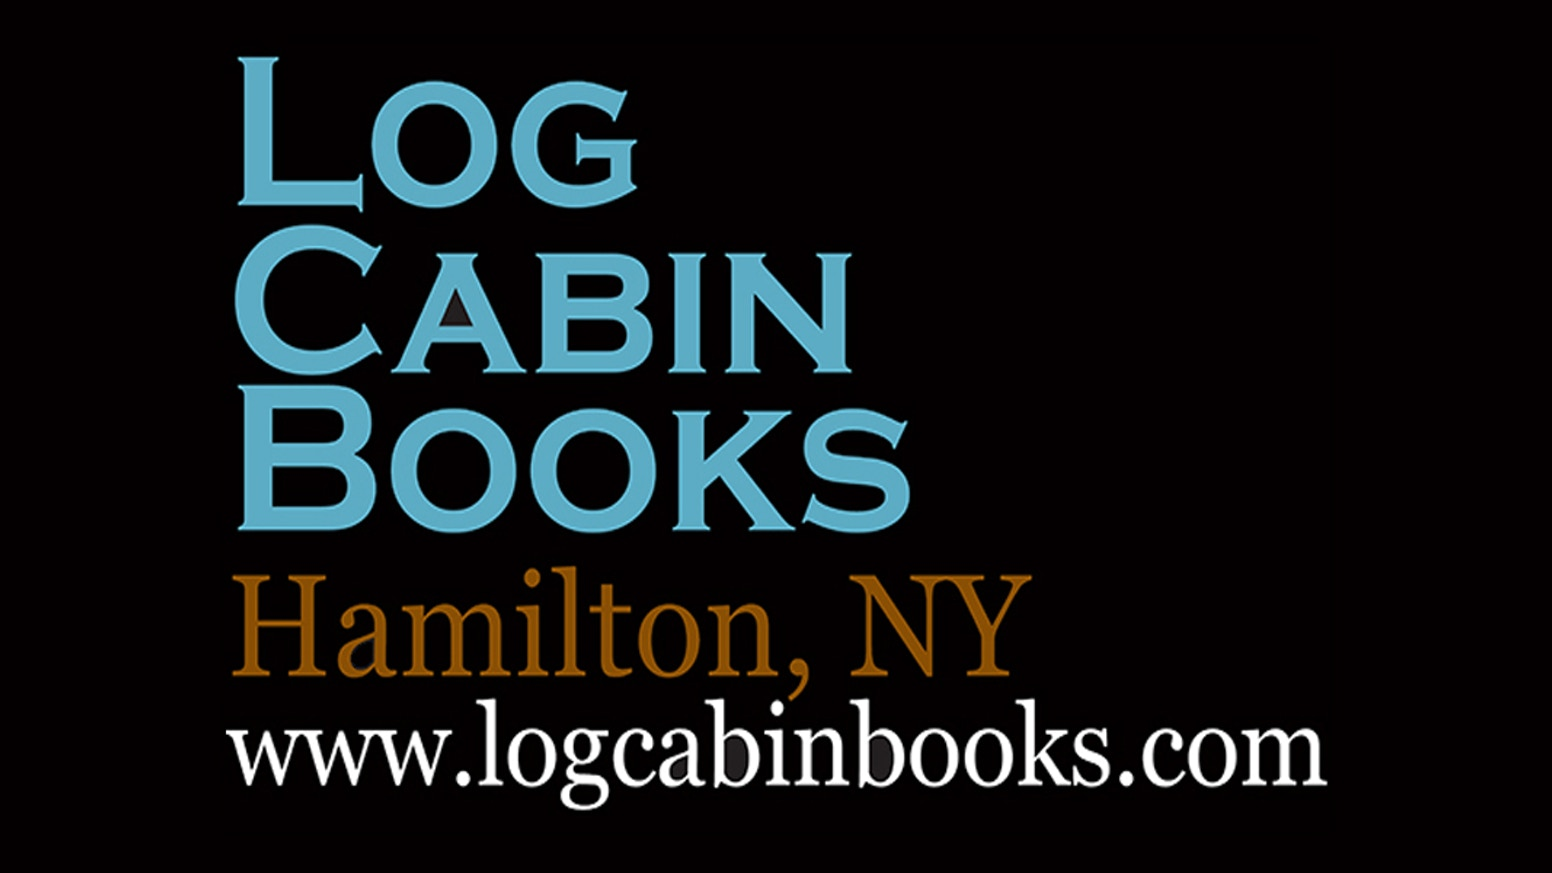 Amazing photo of Log Cabin Books is launching The E Project to EXPAND our business in  with #9A5806 color and 1552x873 pixels